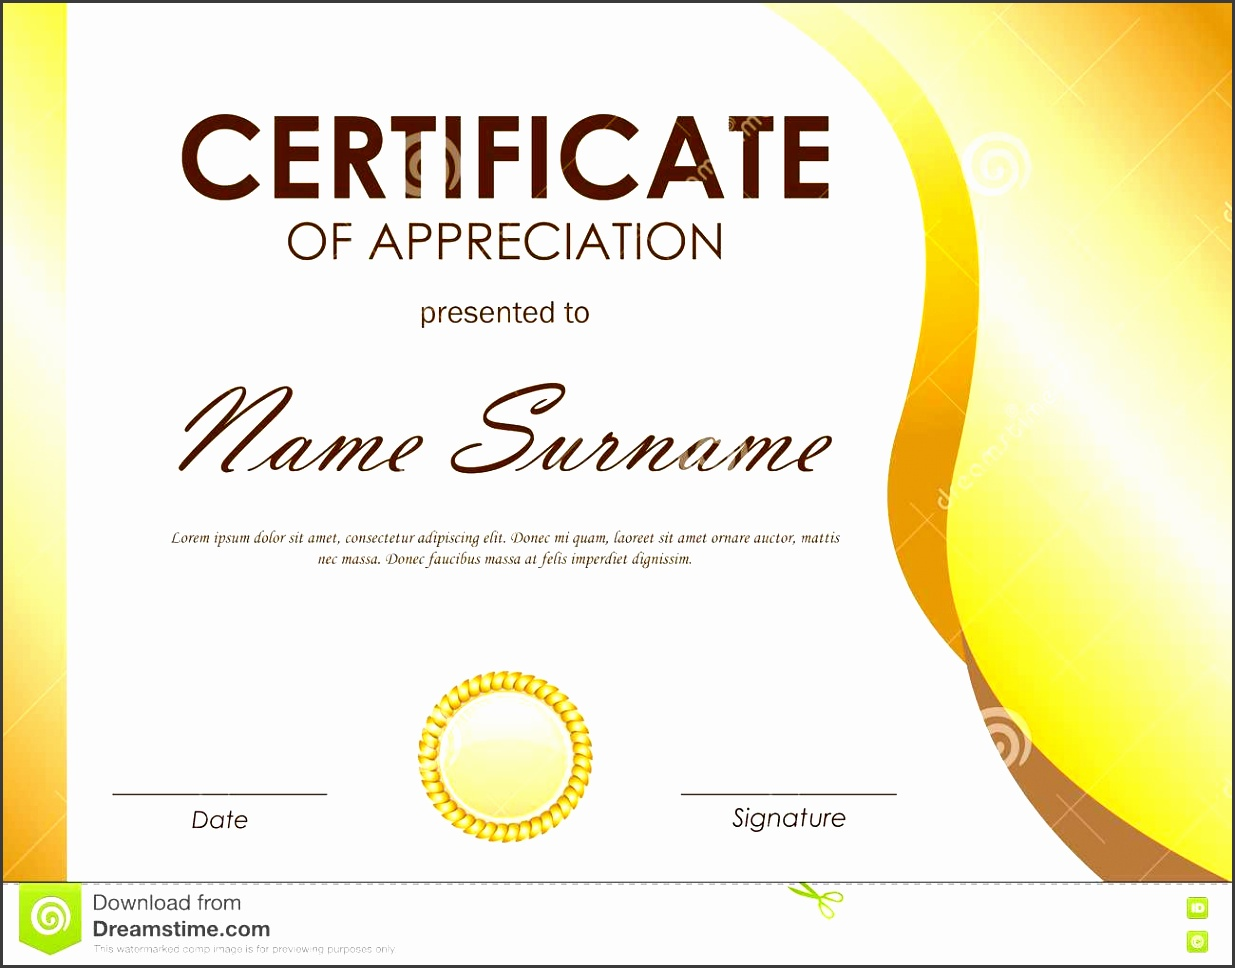 Word Certificate Of Appreciation Template Project Schedule Sample  Certificate Appreciation Template Gold Wavy Curved Light Background